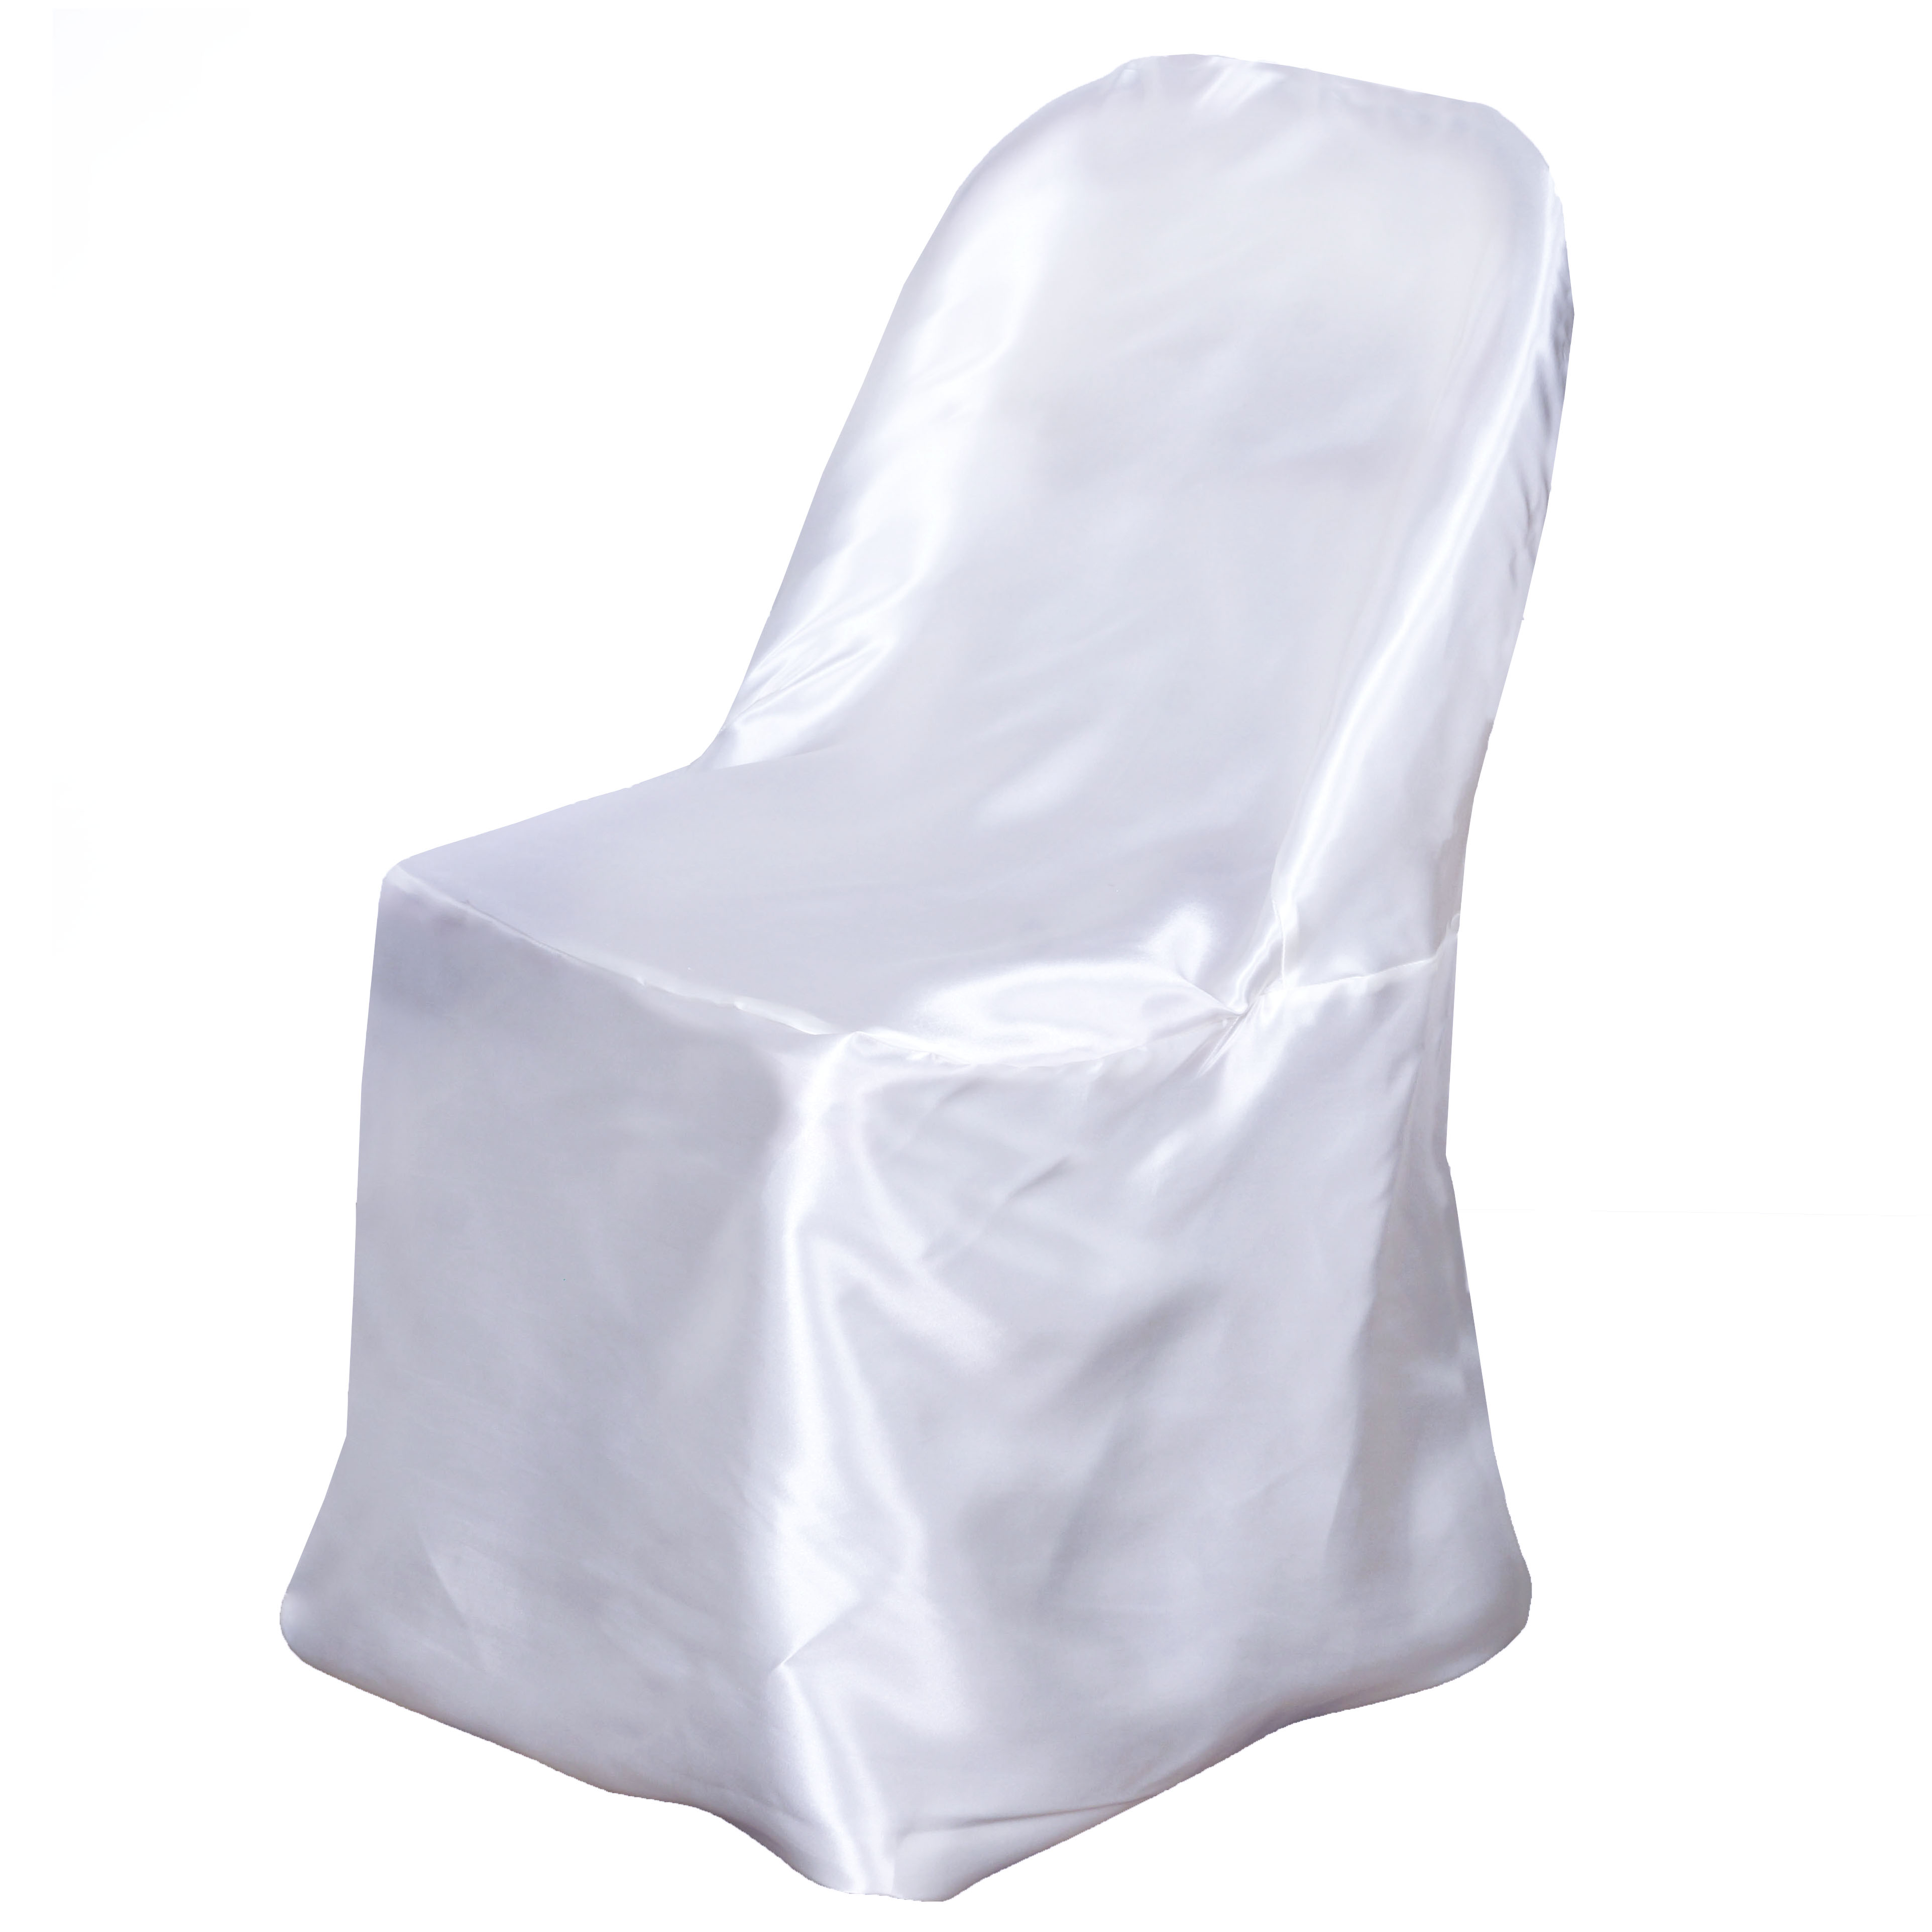 150 pcs Satin Folding CHAIR COVERS Wedding Catering Party